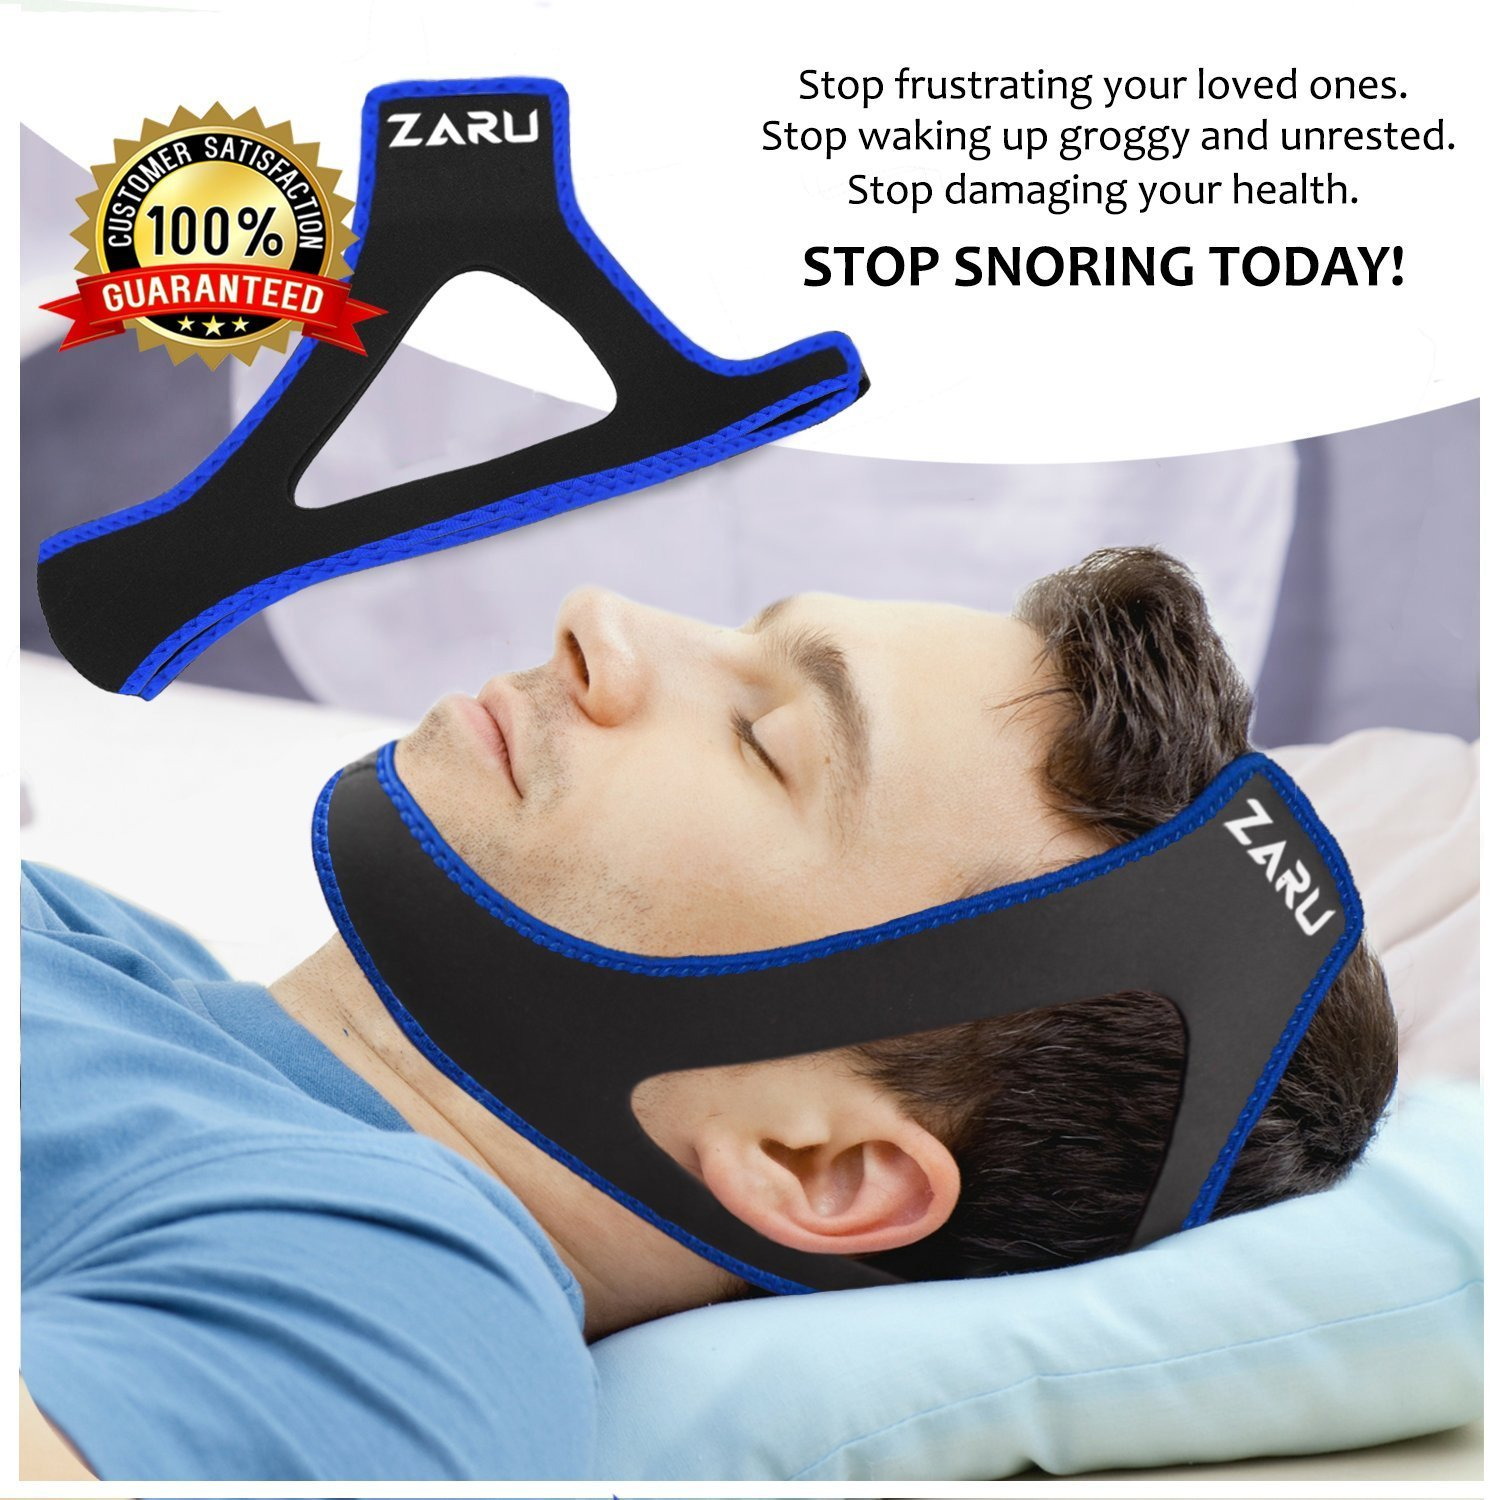 Premium Anti Snore Chin Strap by ZARU (2018 New Version) - Advanced Snoring Solution Scientifically Designed to Stop Snoring Naturally and Give You The Best Sleep of Your Life!